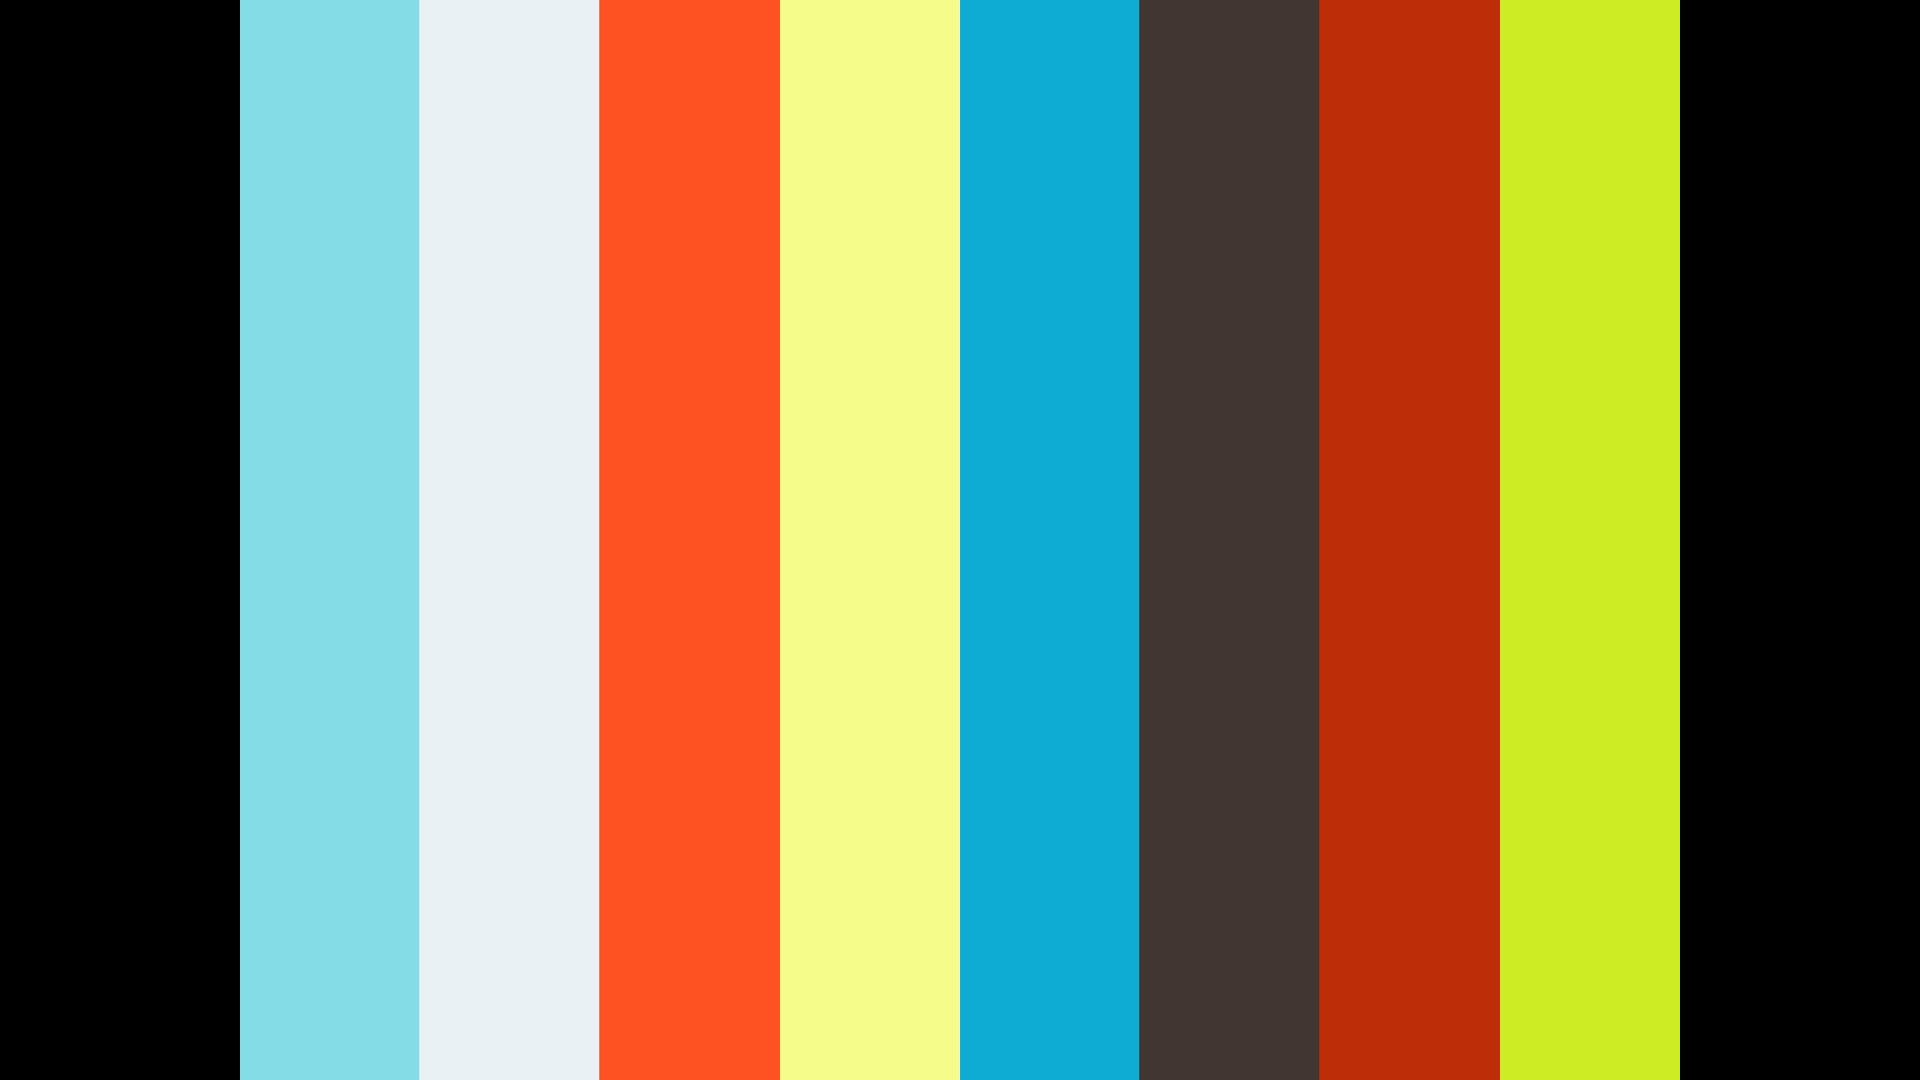 Two Studies About Vitamin C and D